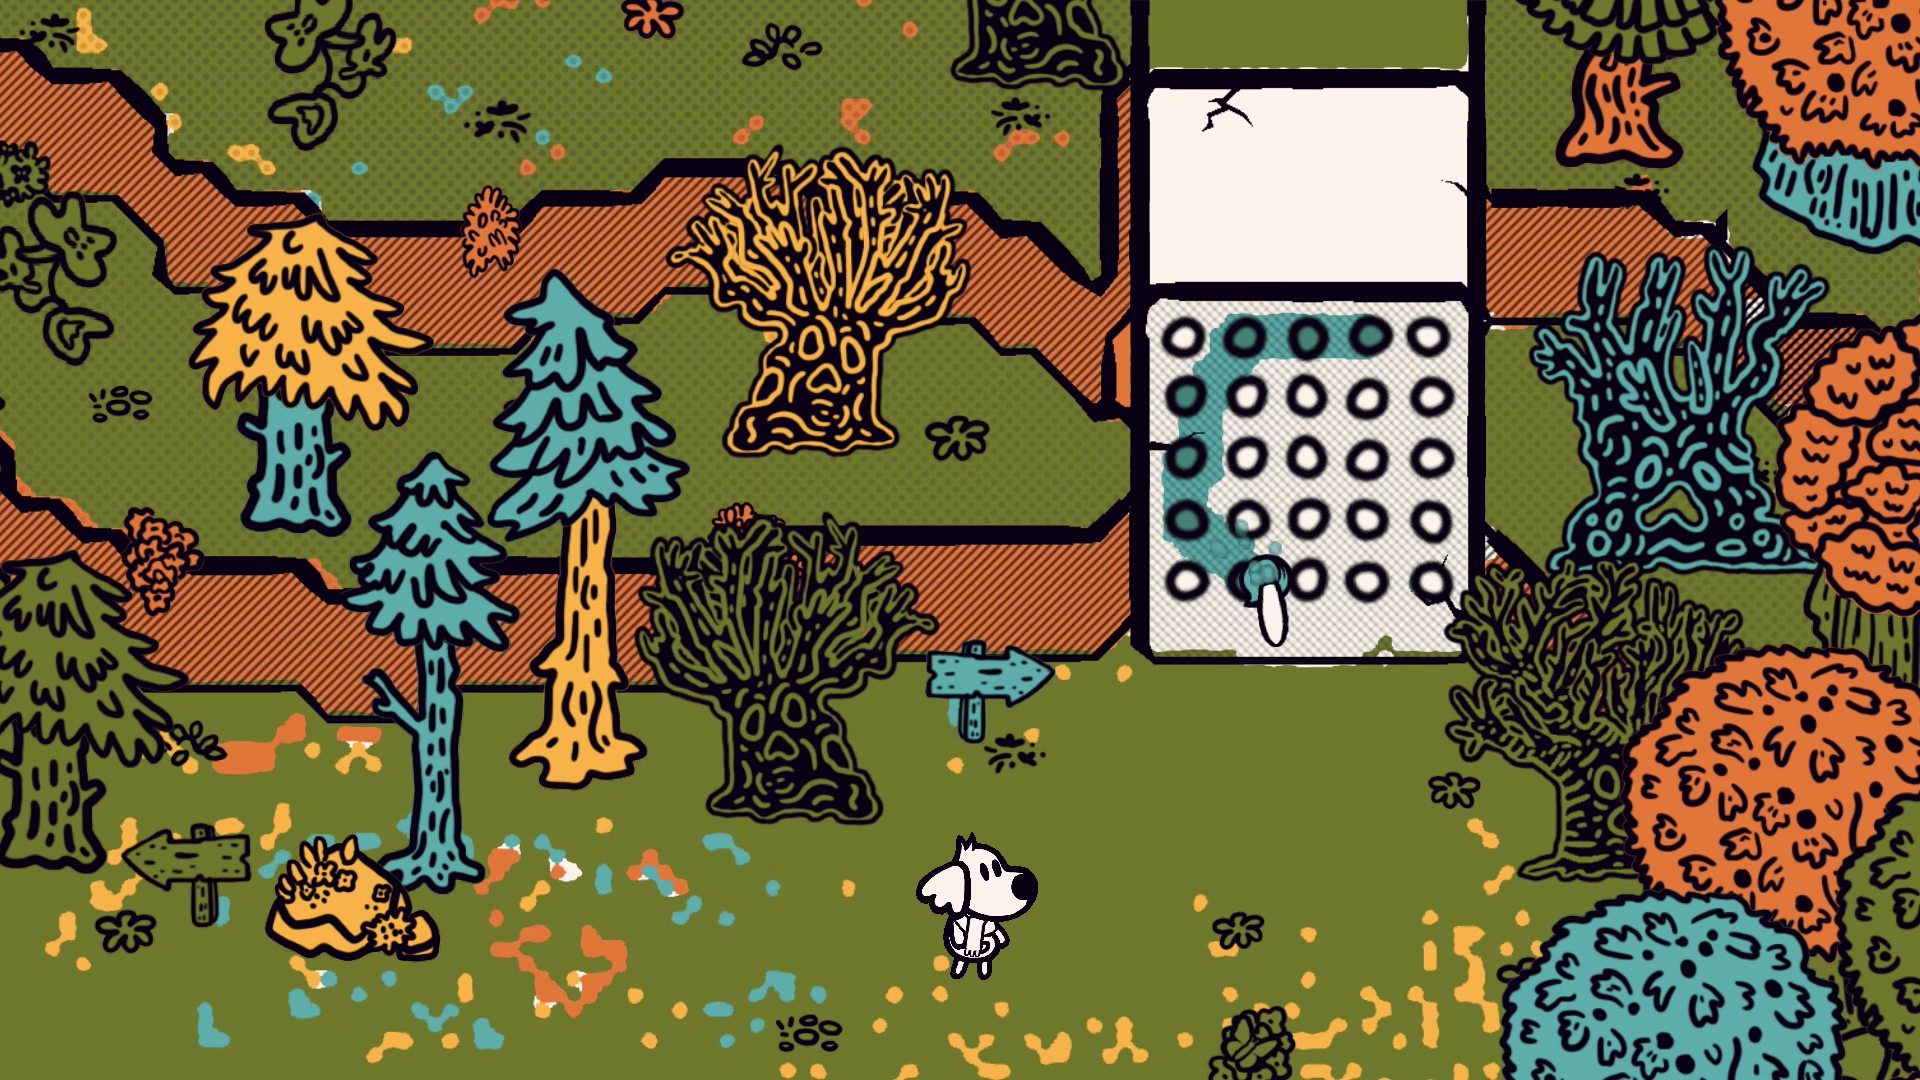 An almost entirely colored in world where a little dog solves a puzzle by painting.